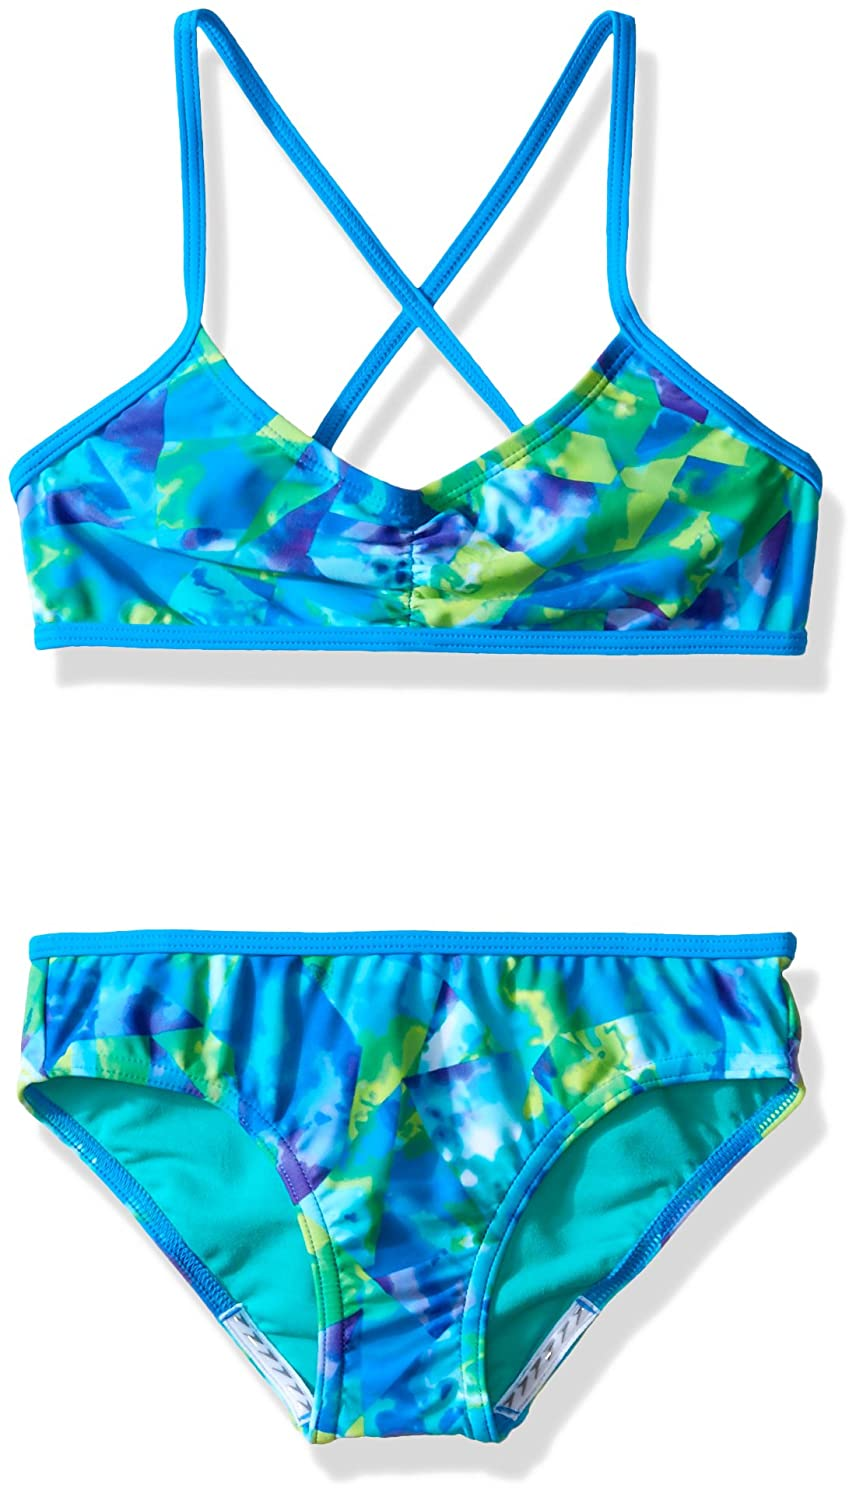 Speedo Girls Tie Dye Sky Two Piece Bikini Set, Size 10, Blue 7714711